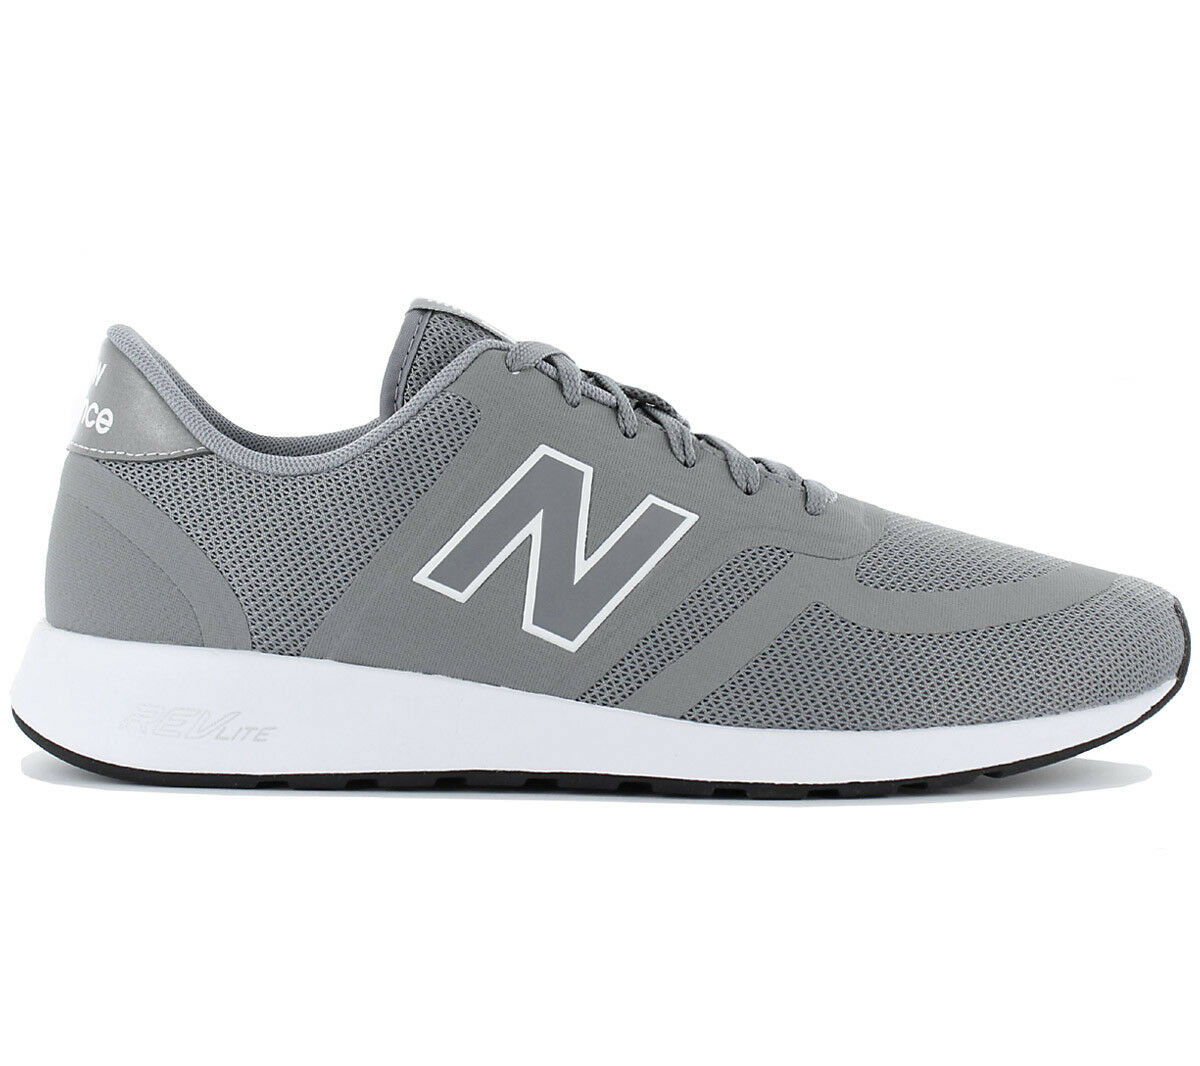 New Balance 420 Revlite Men's Sneakers shoes Zapatillas greyes Nb MRL420CA New